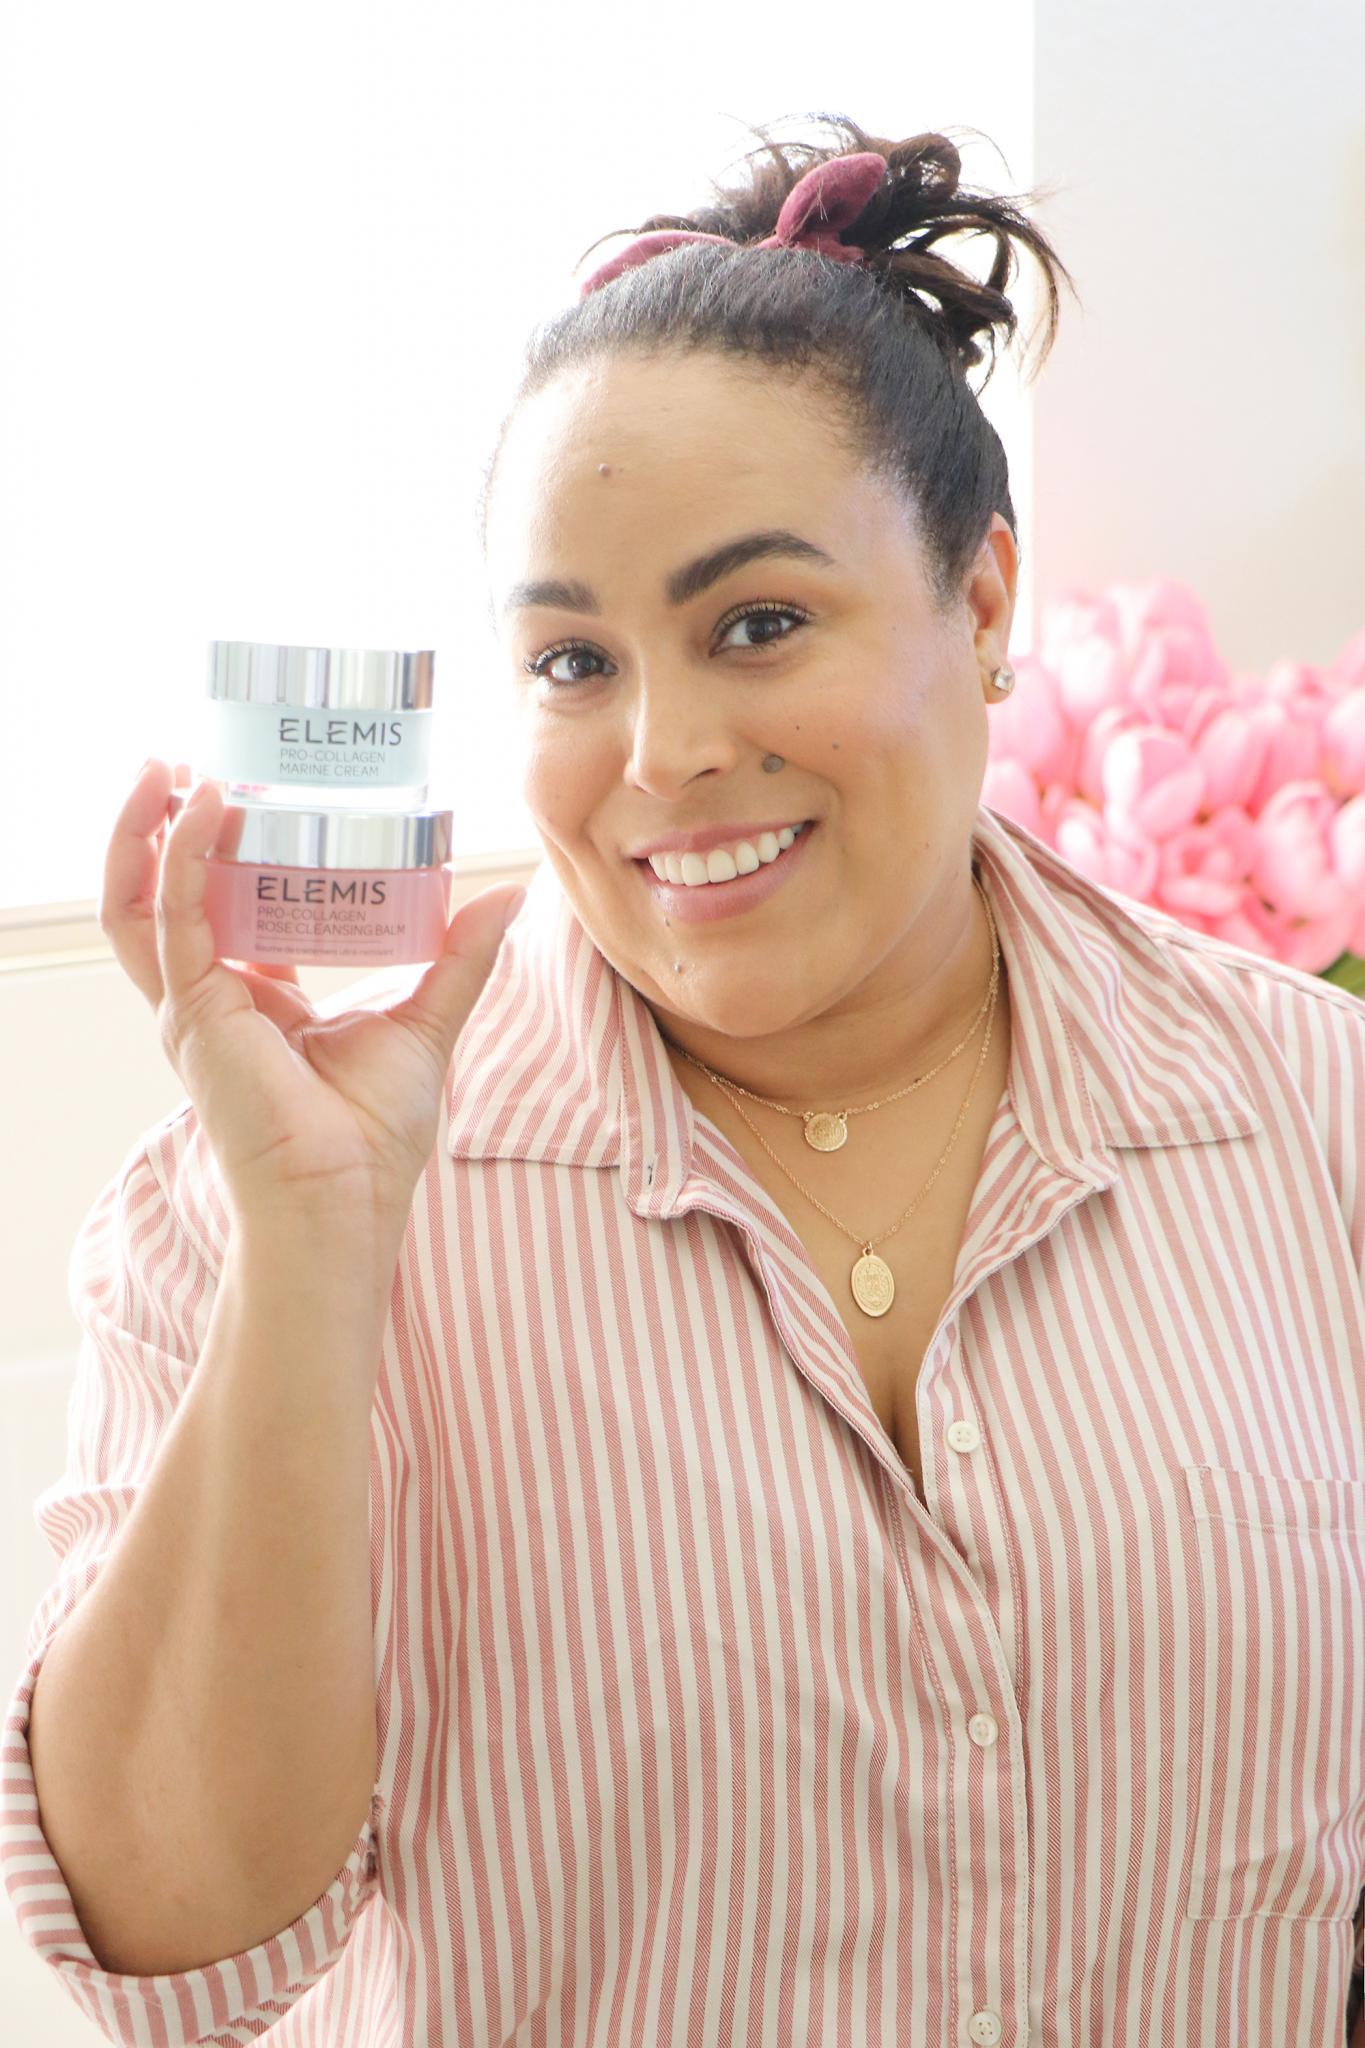 Looking for ways to use Elemis Pro-Collagen Cleansing Balm? Los Angeles Blogger Jamie Lewis is sharing her top favorite ways to use the Elemis Pro-Collagen Cleansing Balm here!